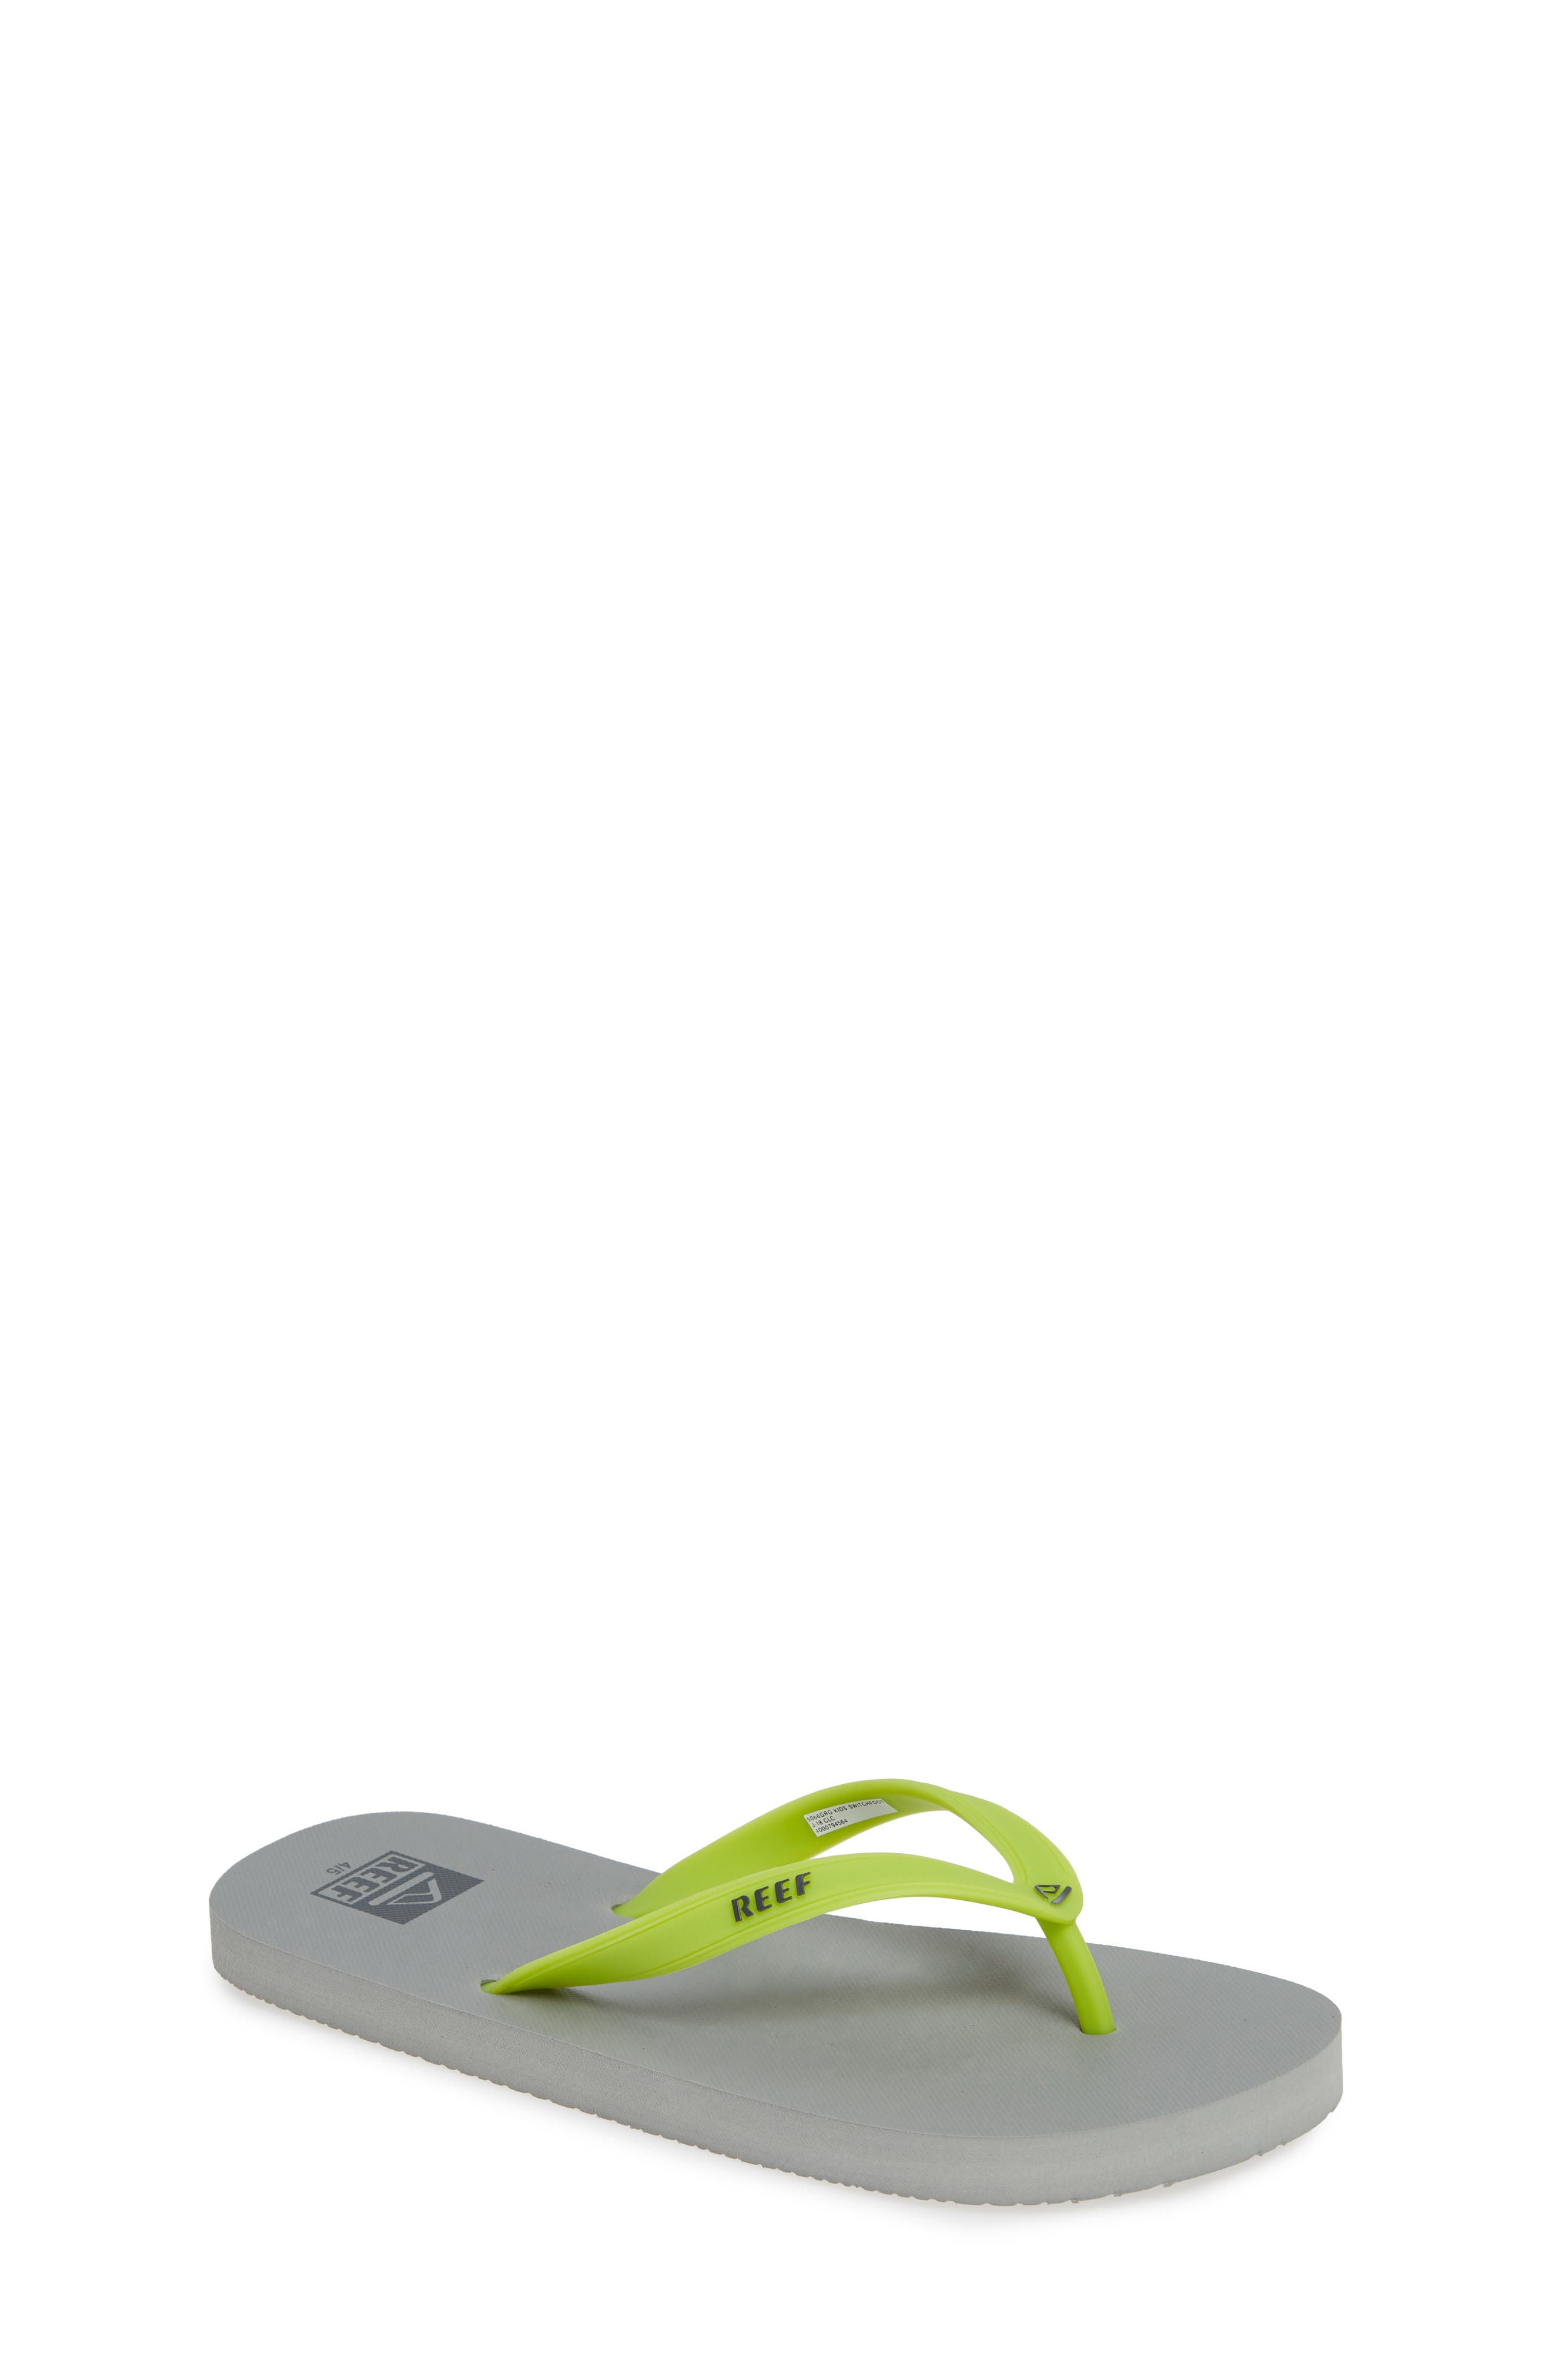 REEF, Switchfoot Flip Flop, Main thumbnail 1, color, GREY/ GREEN